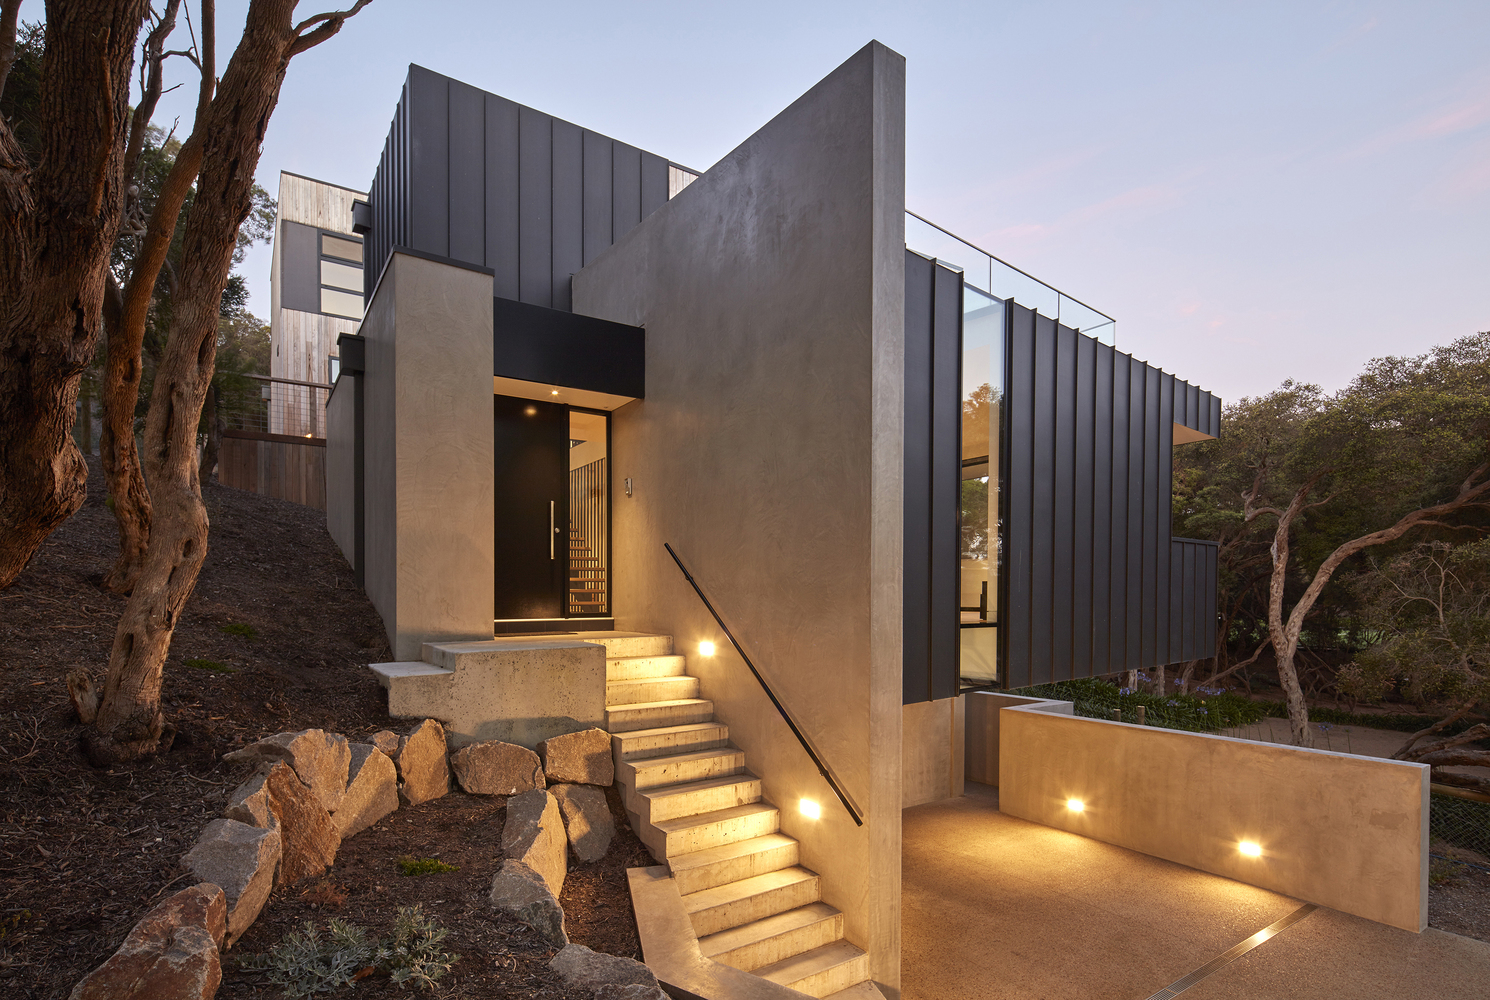 Gallery of beach house by dx architects the local project for Local residential architects near me